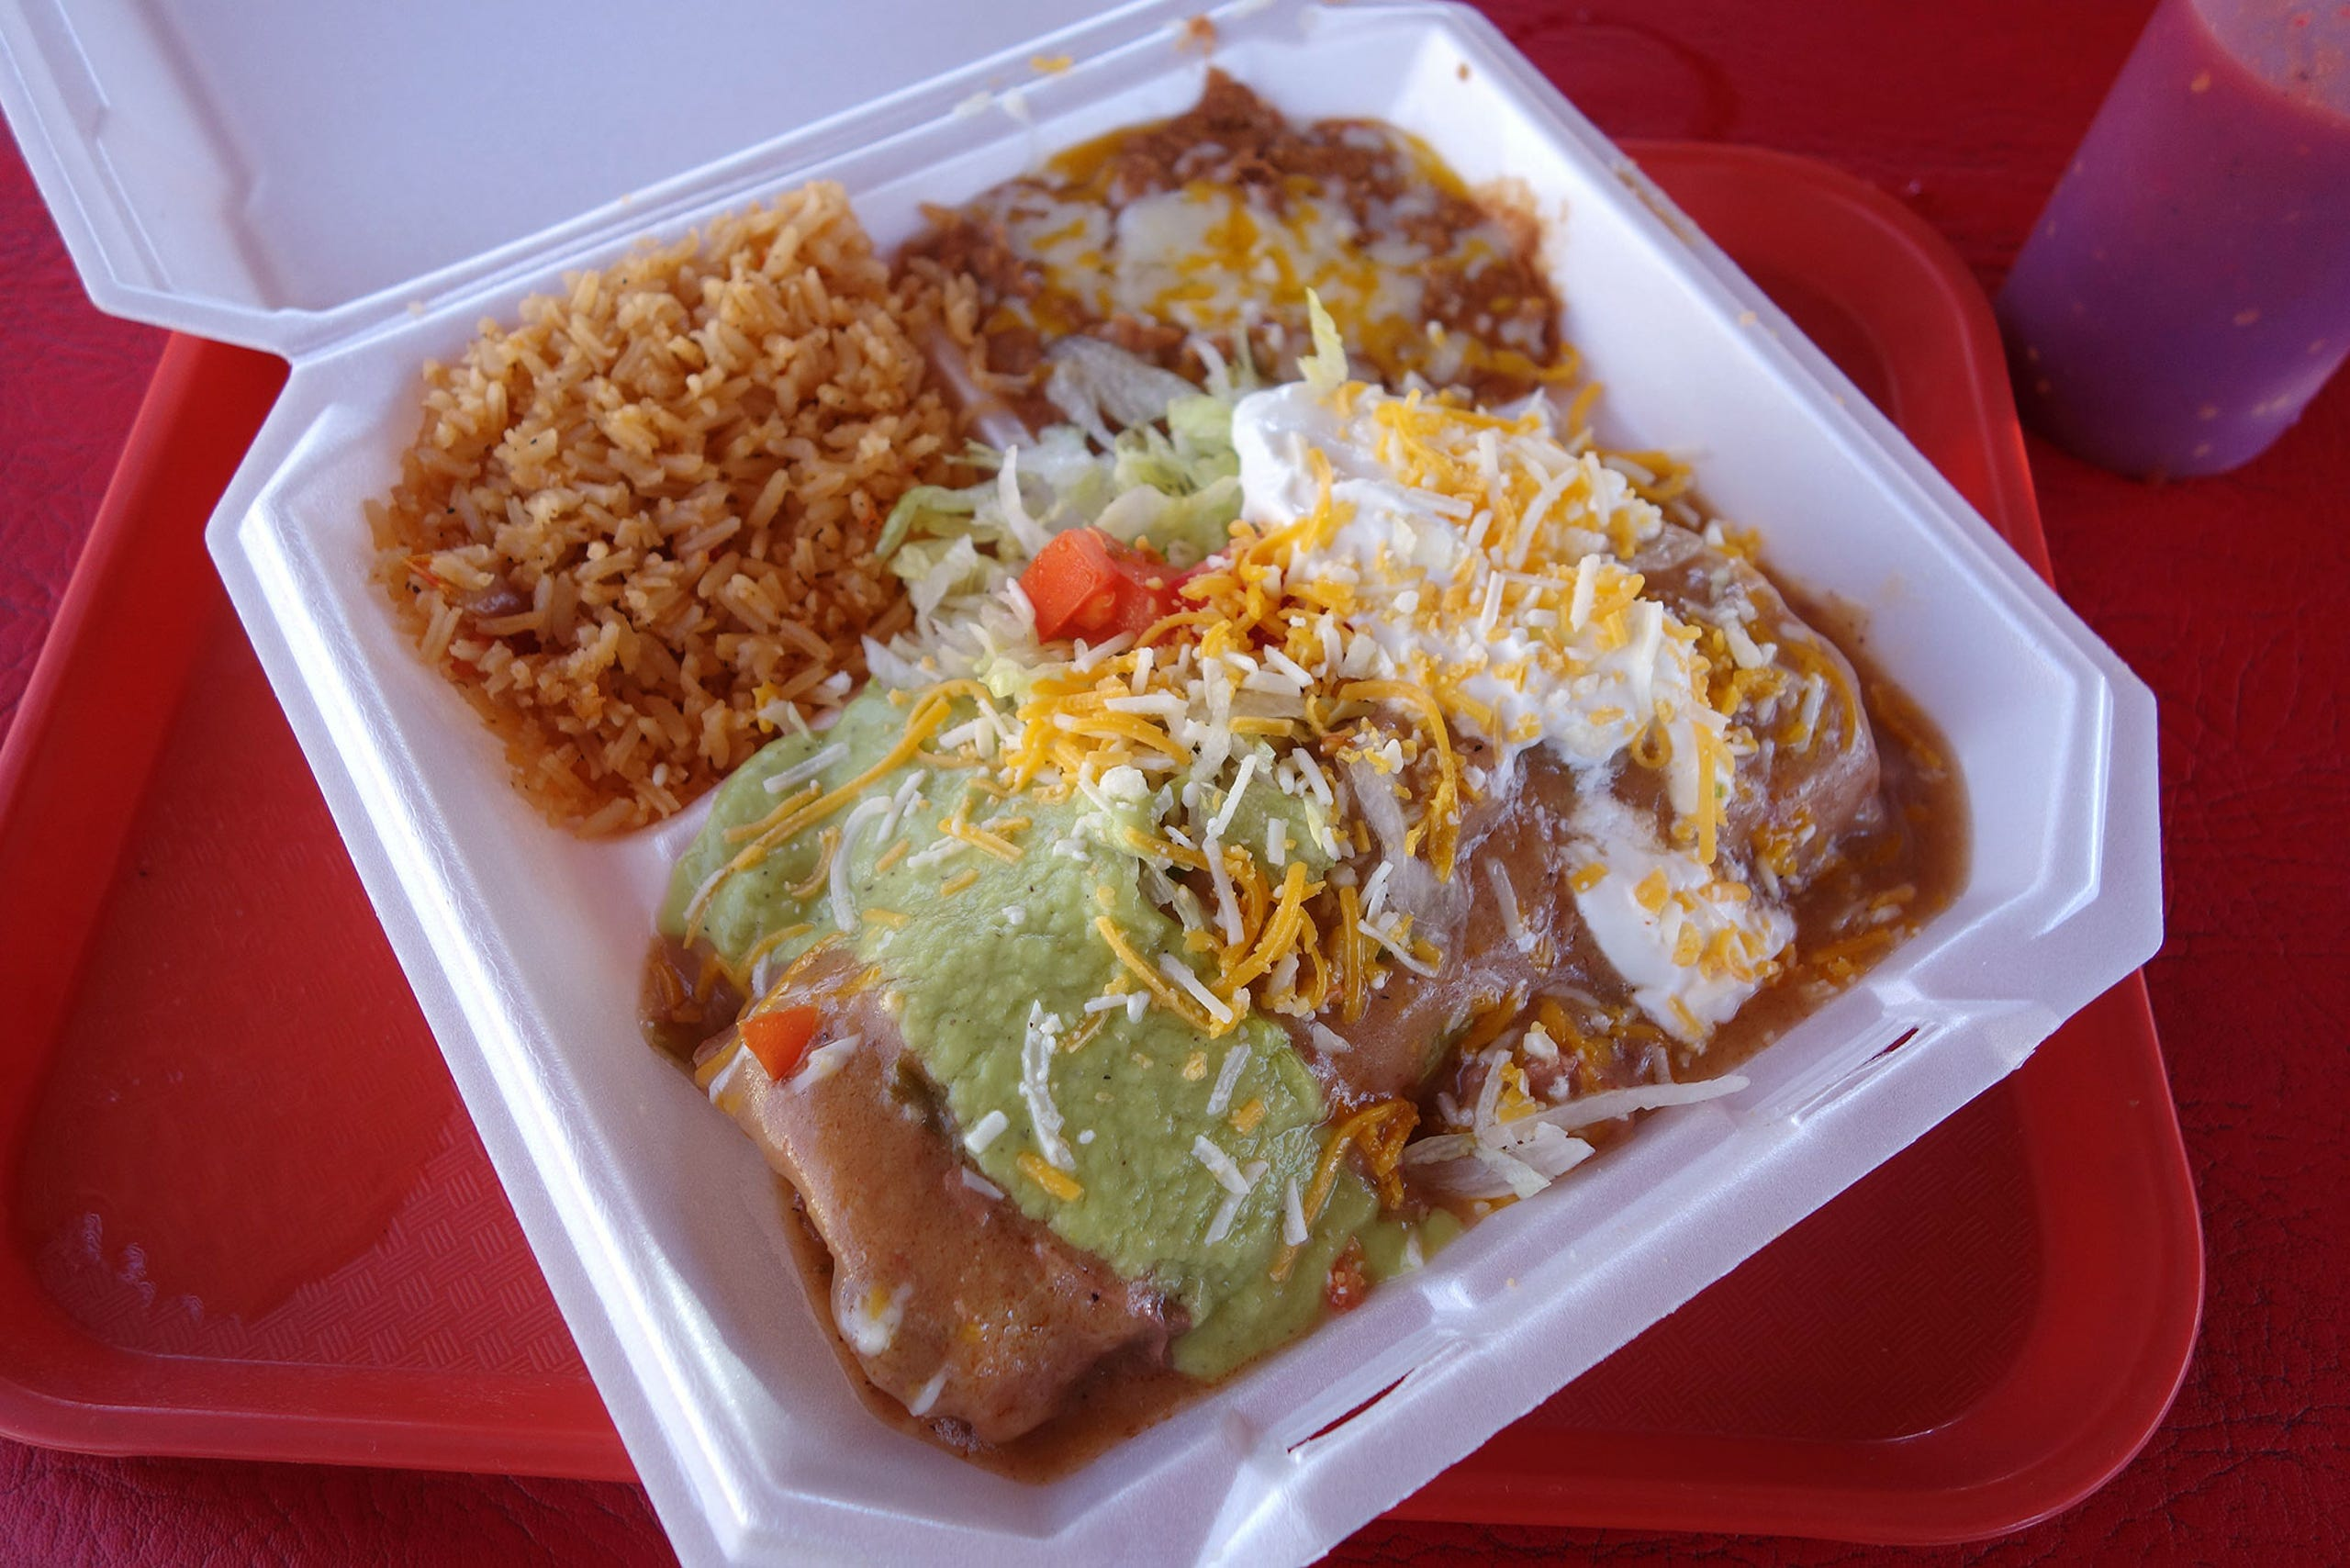 Almost Famous Chimichangas eat for 10 bucks or less at these downtown phoenix restaurants